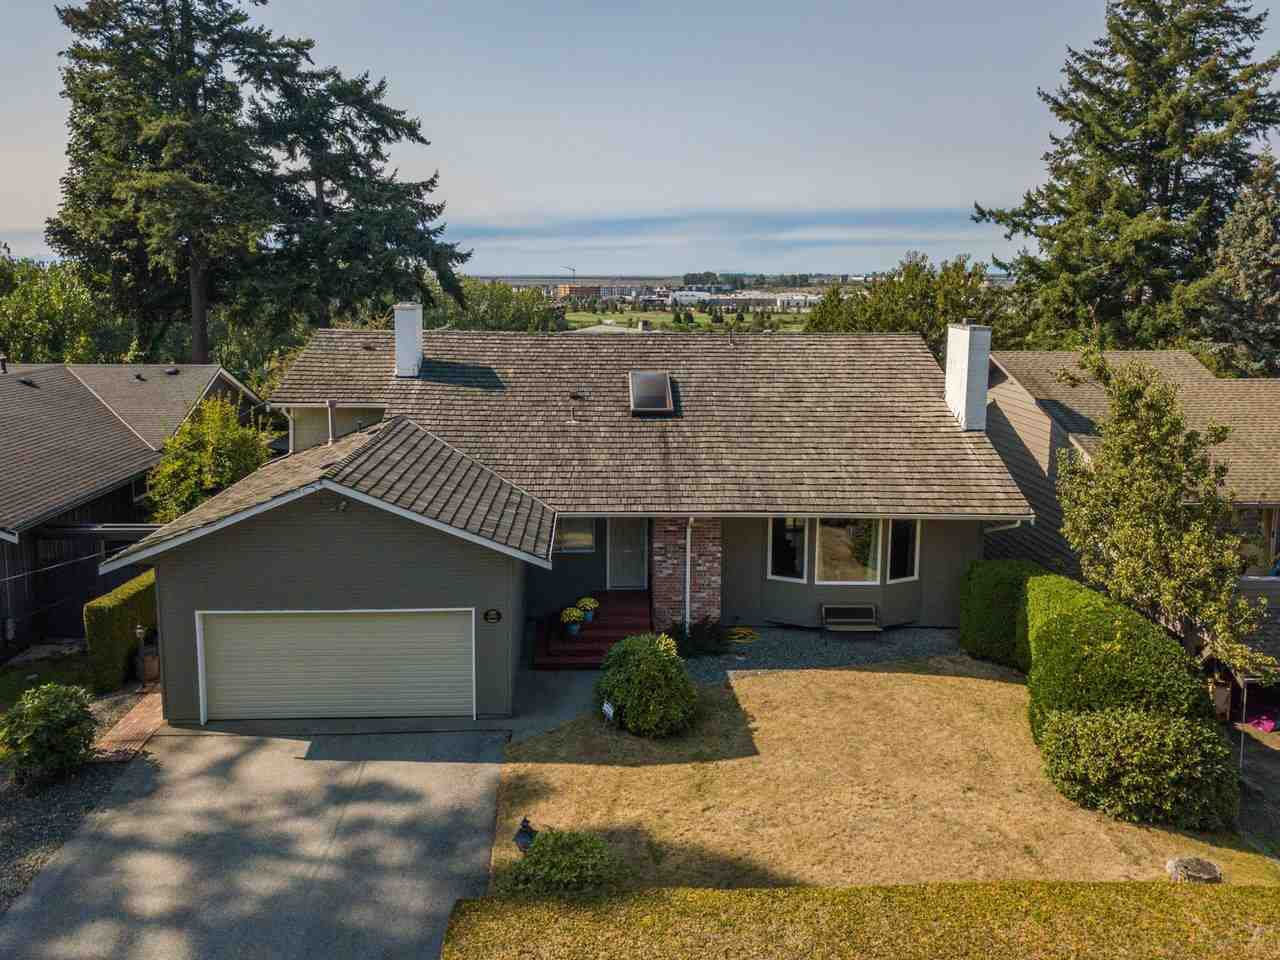 Main Photo: 5309 UPLAND Drive in Delta: Cliff Drive House for sale (Tsawwassen)  : MLS®# R2527108